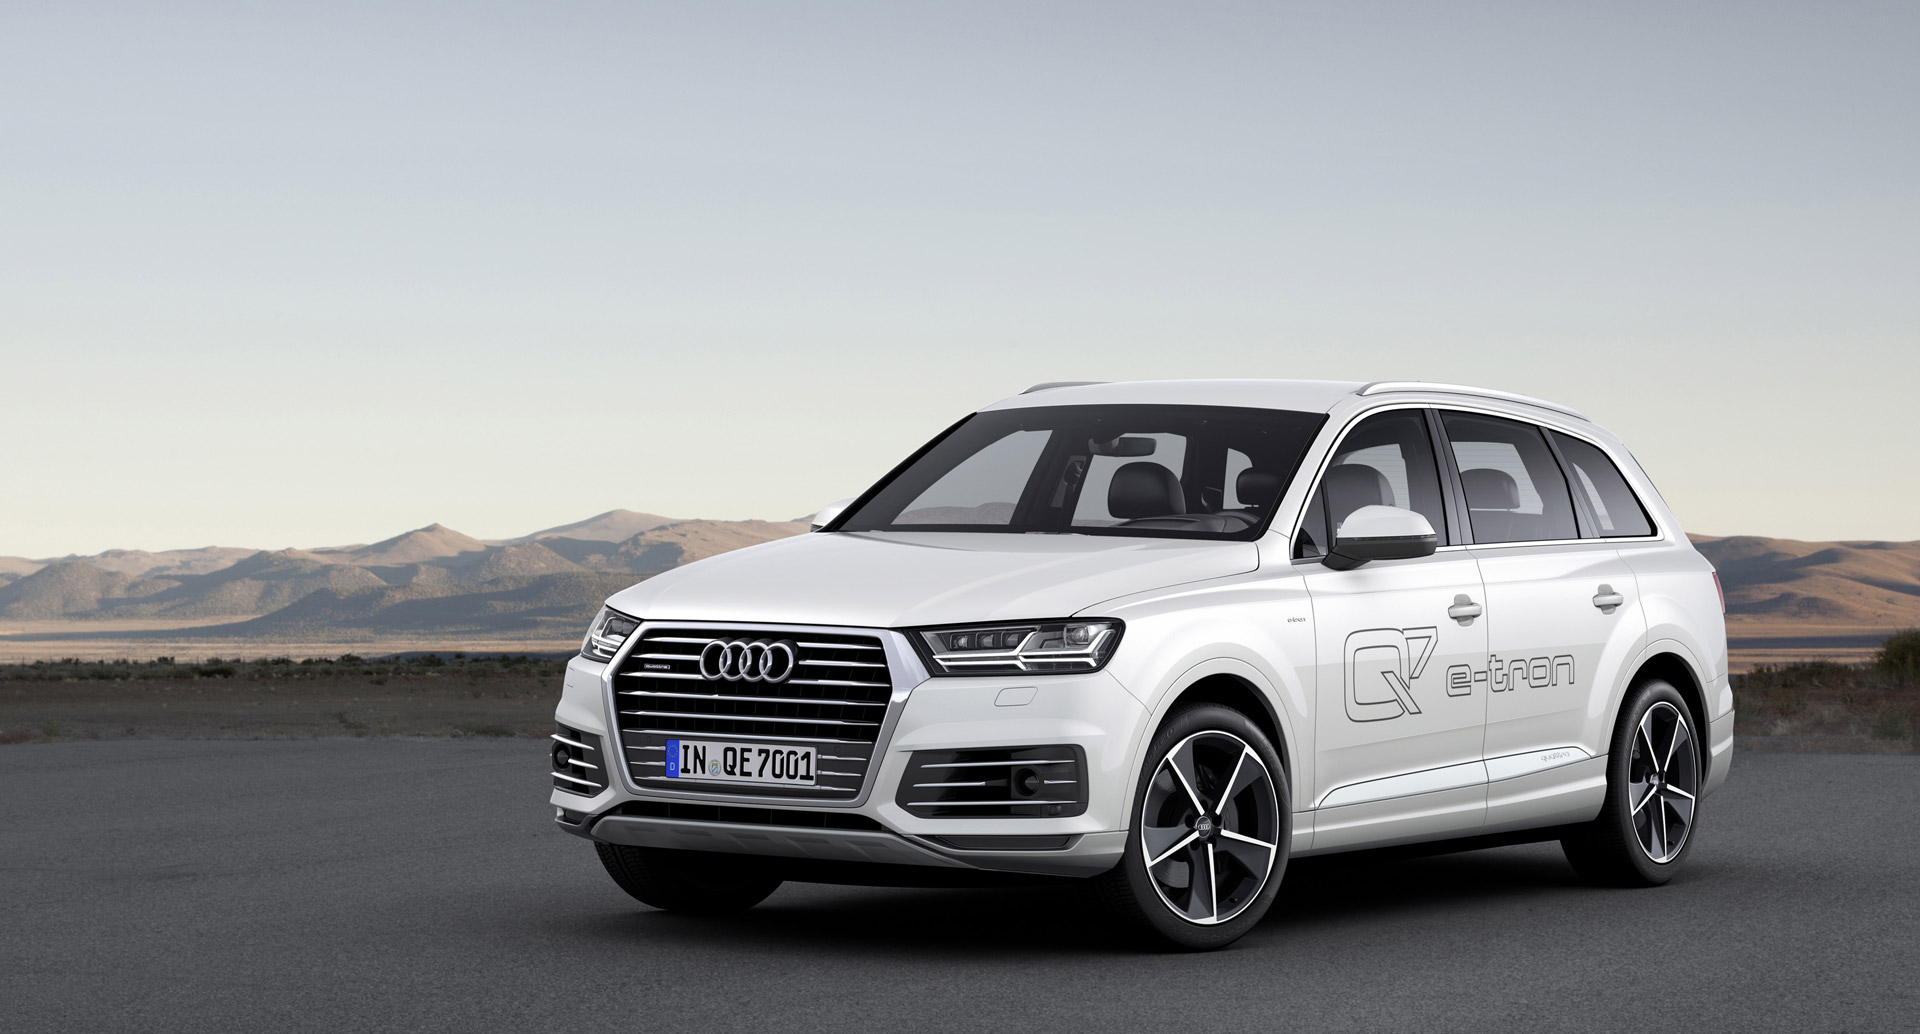 Hybrid version of the Audi Q7 e-tron 2017 model year 98